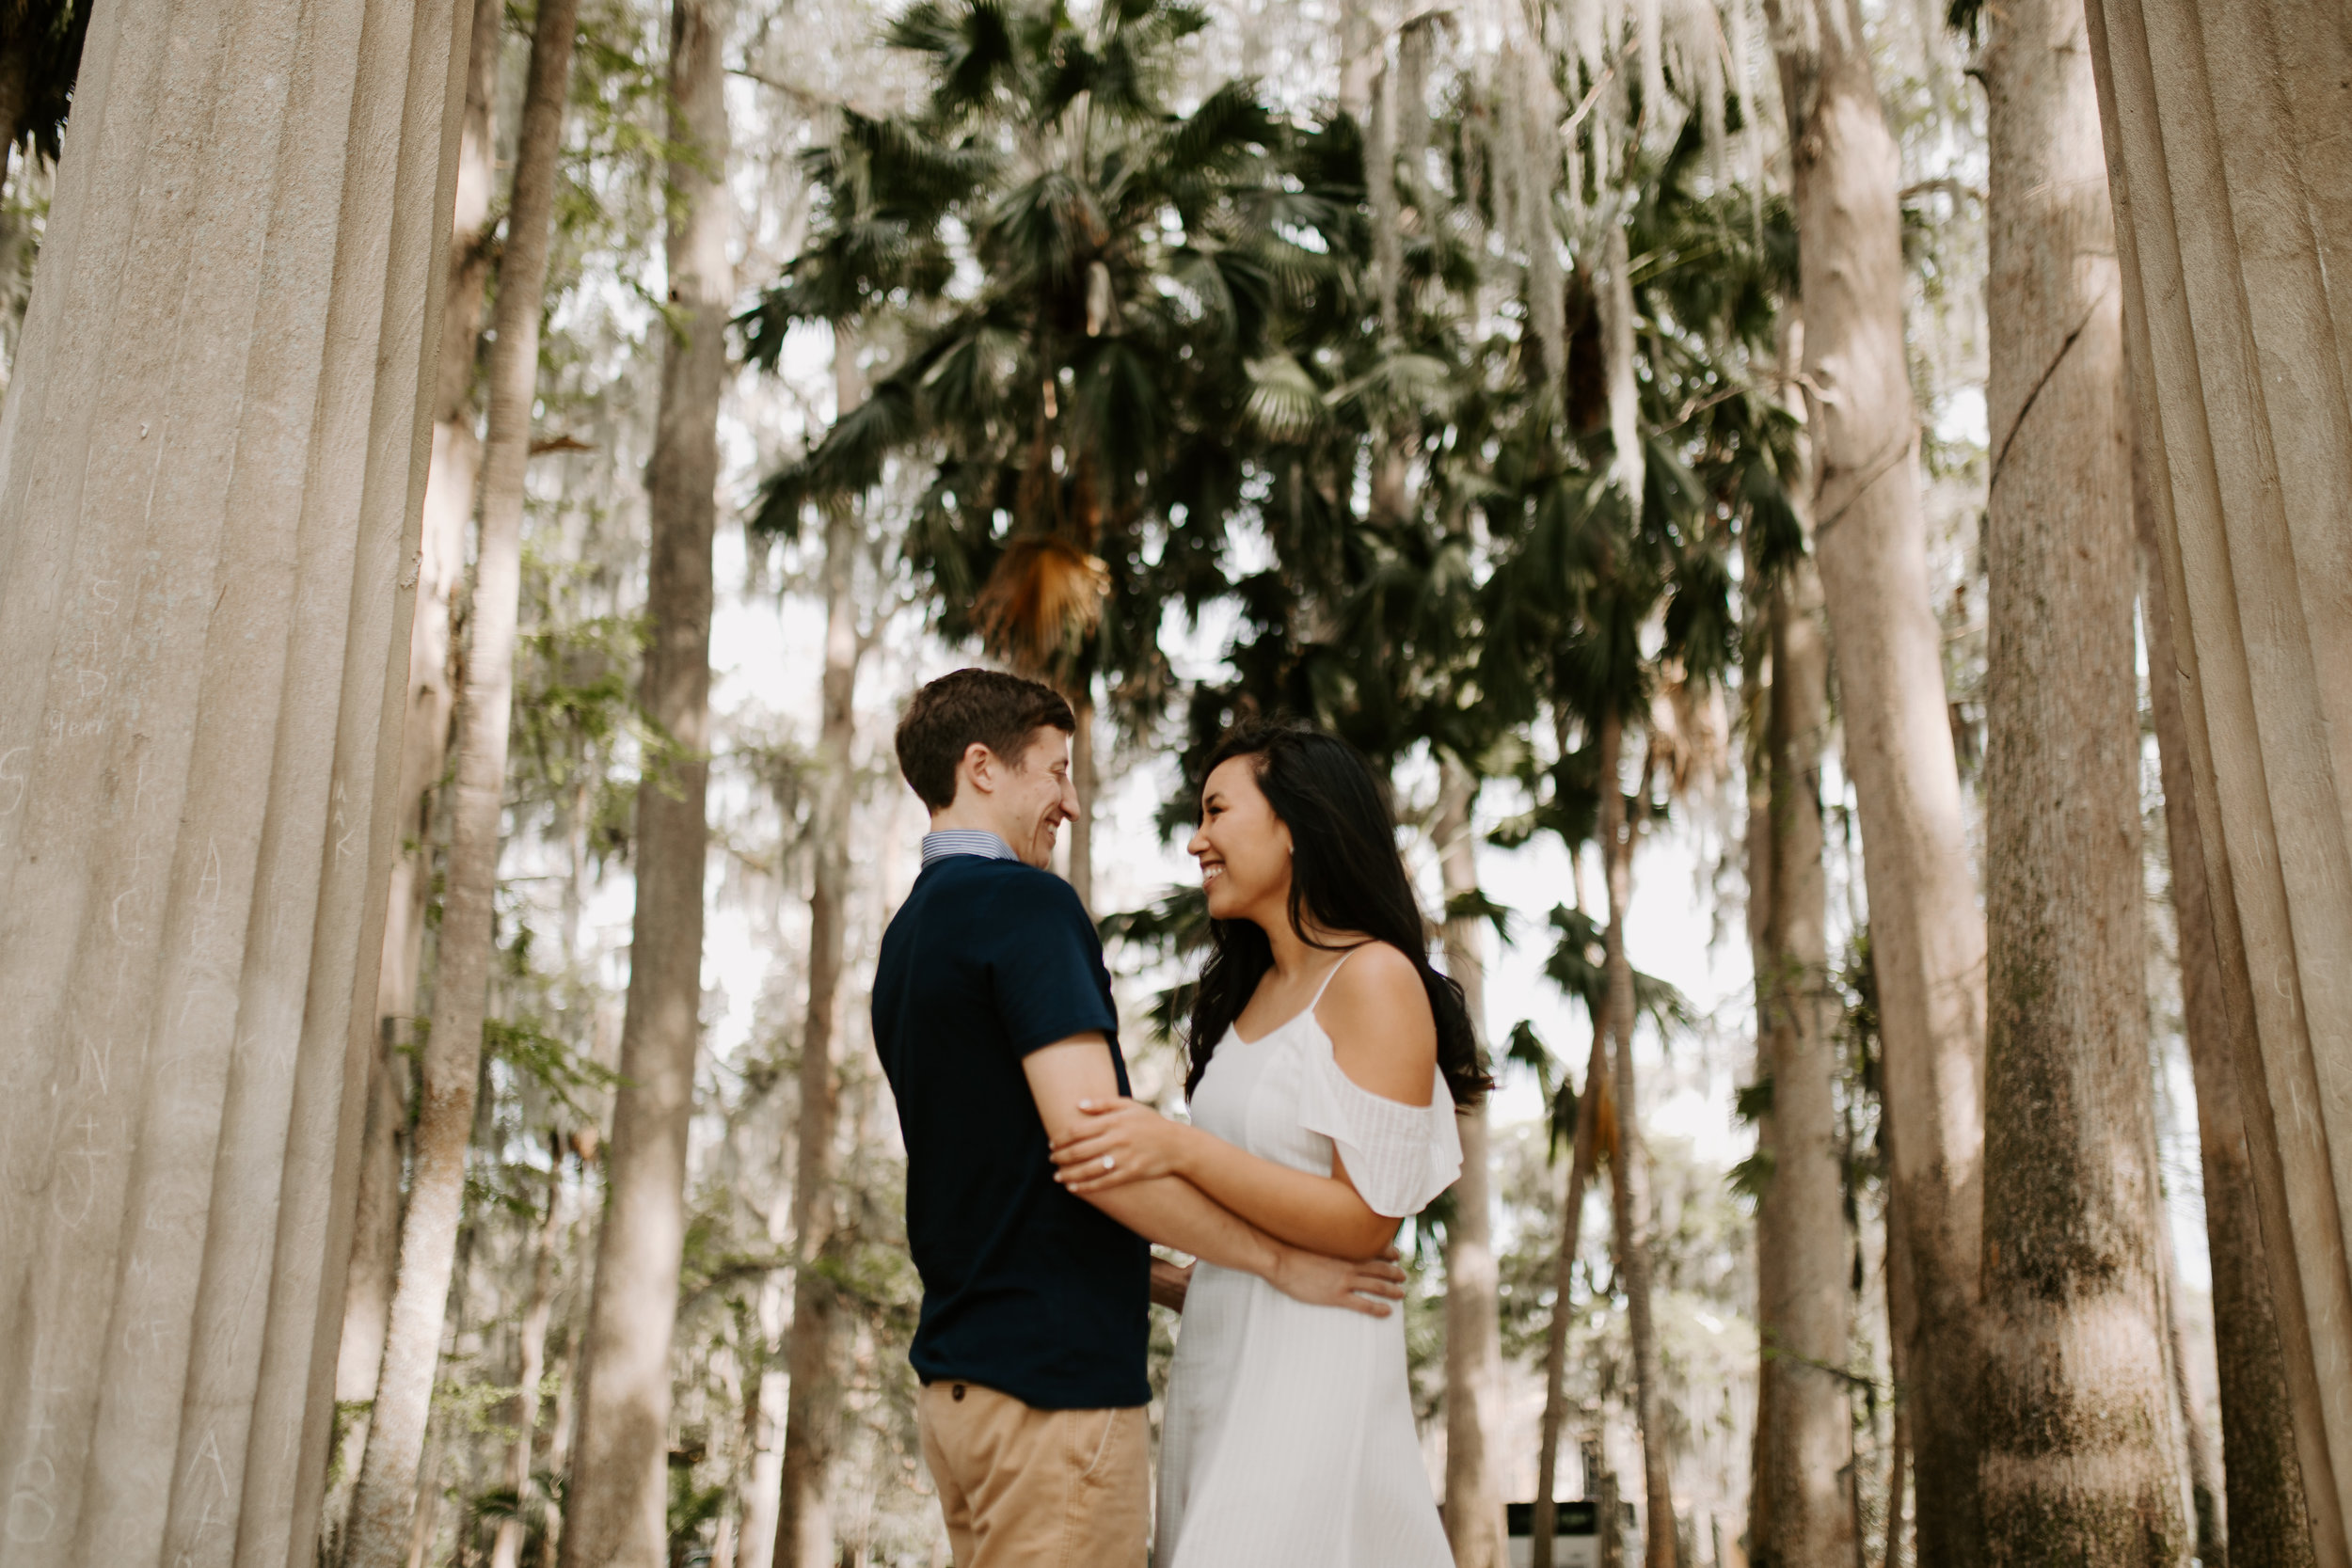 Native_Expressions-Kathryn_+_Jon-Kraft_Azalea_Garden_Engagement-13.jpg